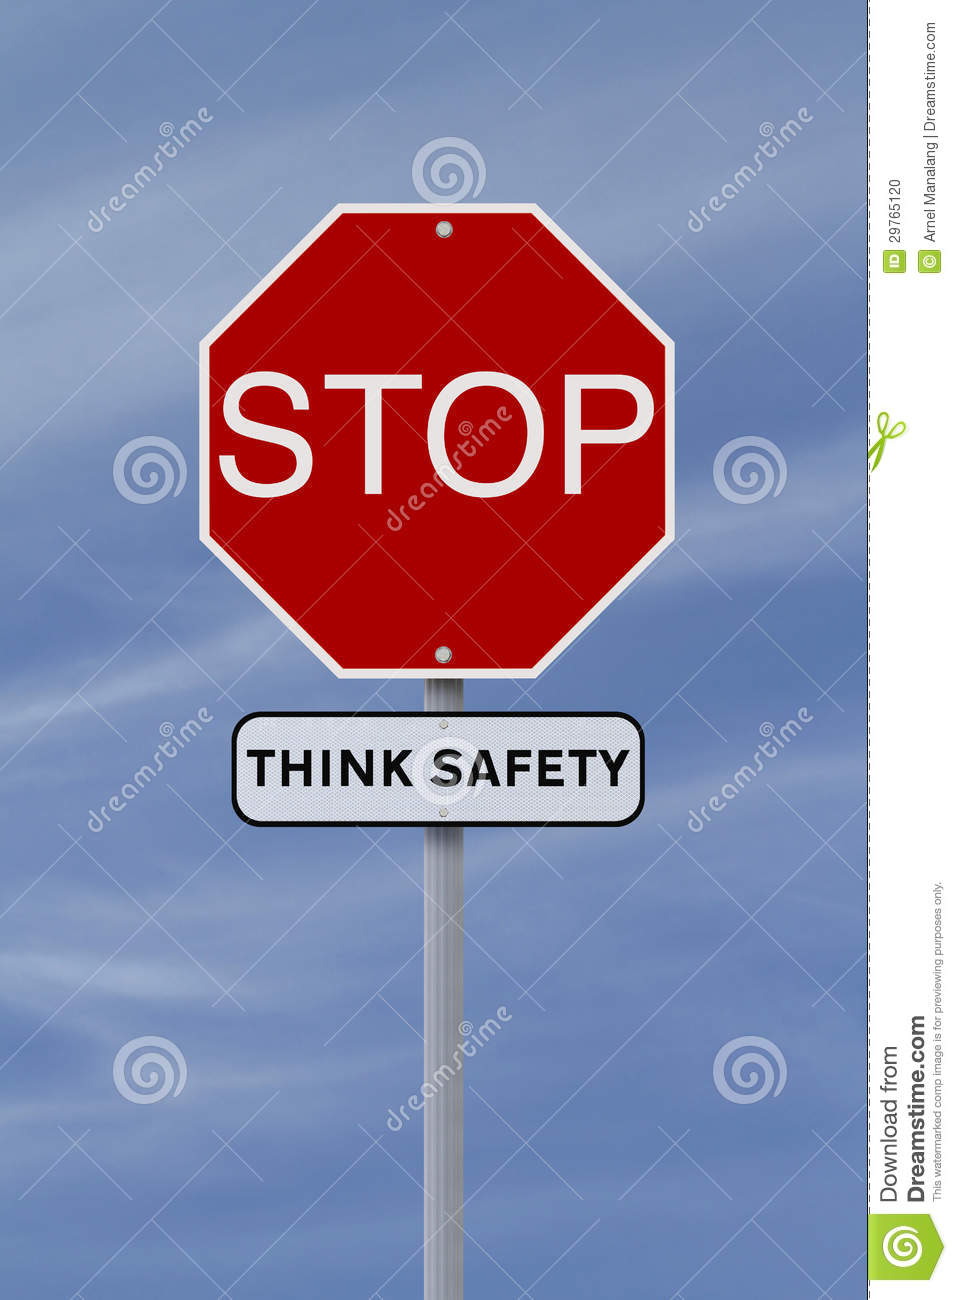 STOP_Stop: Think Safety Stock Photo - Image: 29765120